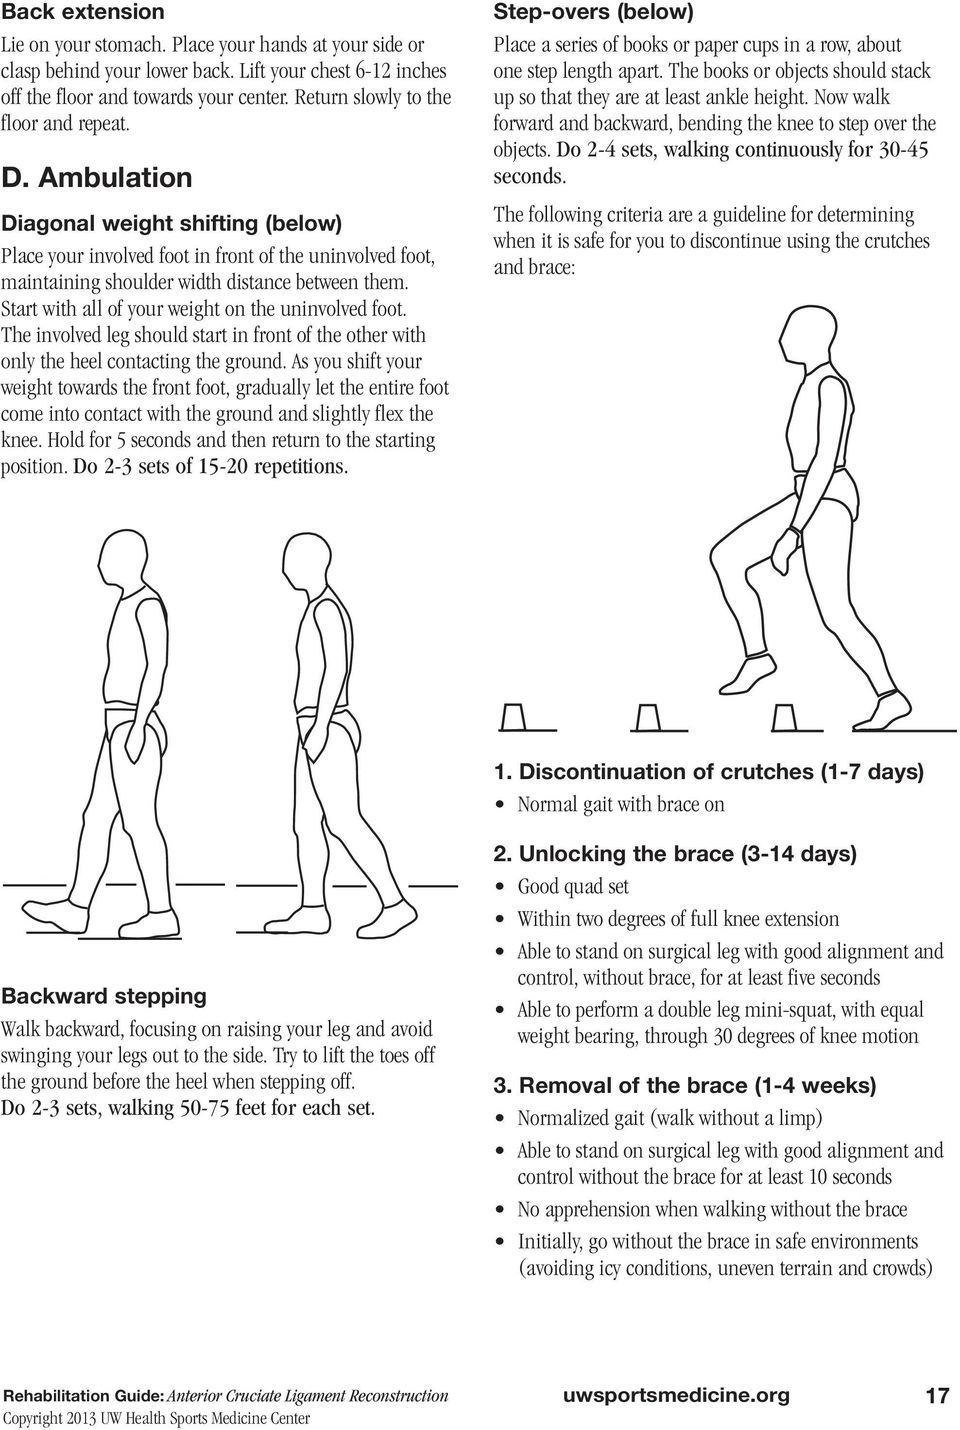 Start with all of your weight on the uninvolved foot. The involved leg should start in front of the other with only the heel contacting the ground.